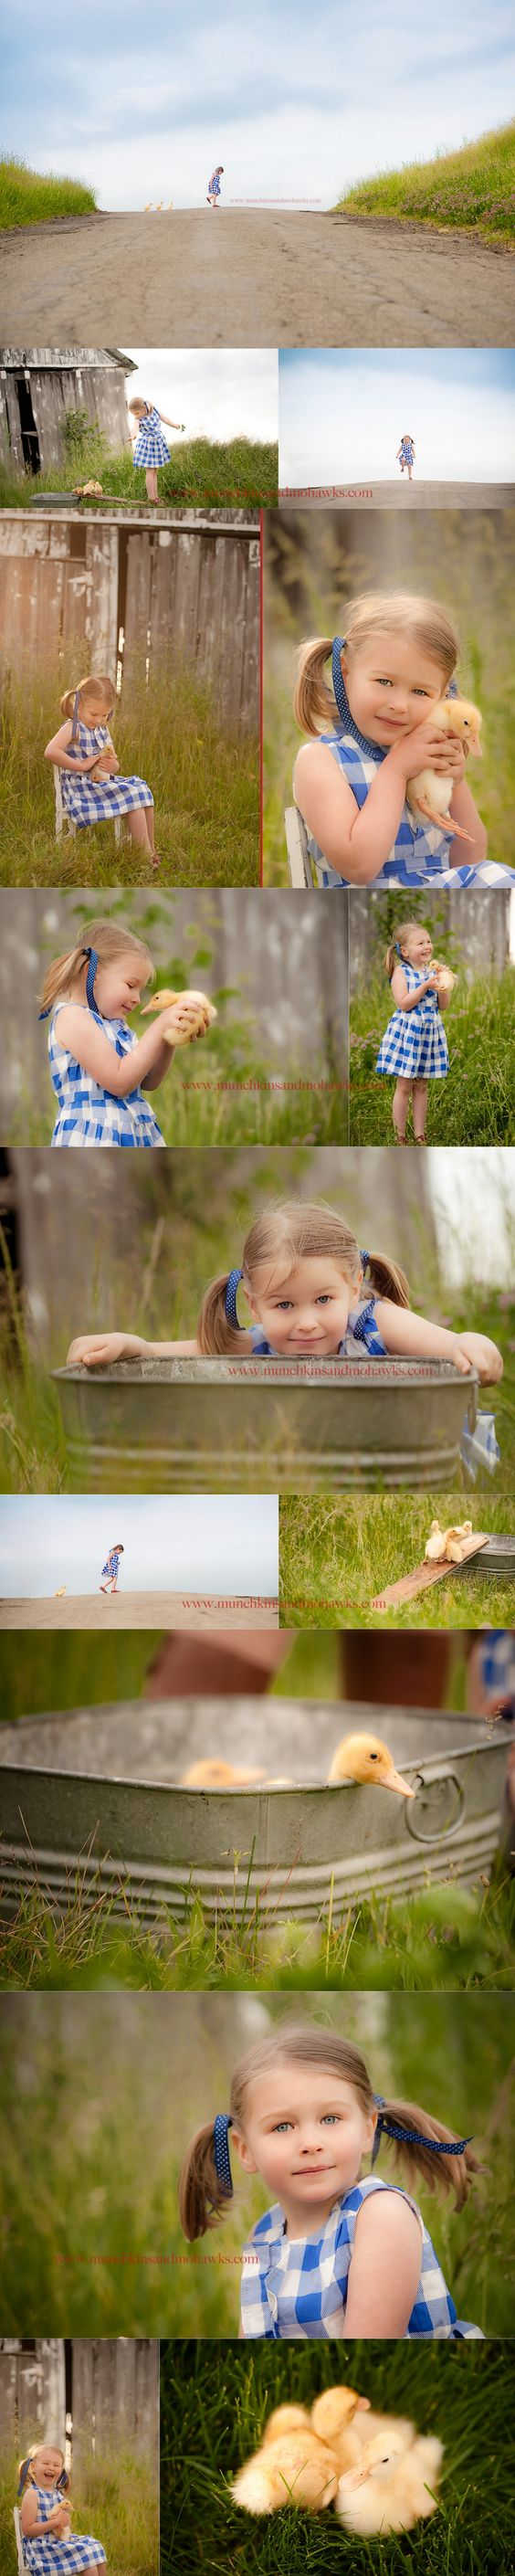 on the farm - girl with ducklings.    SO stinkin' cute.     ©munchkins and mohawks photography